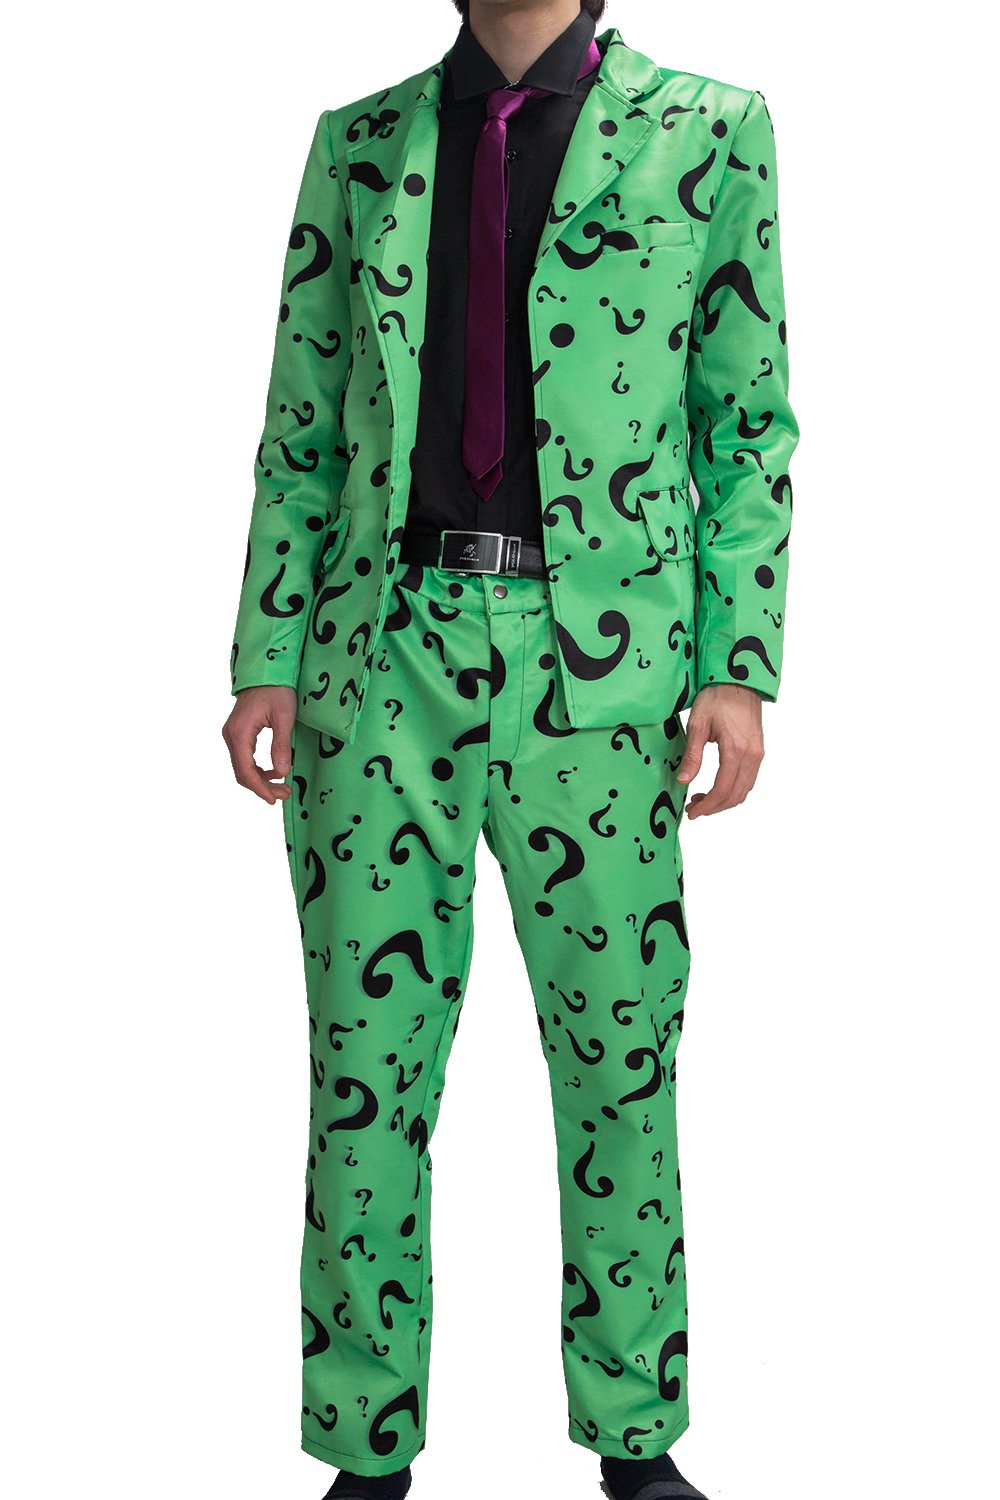 Riddler Costume Suit Shirt Tie Question Mark Cosplay Halloween Adult Outfit Xcoser S